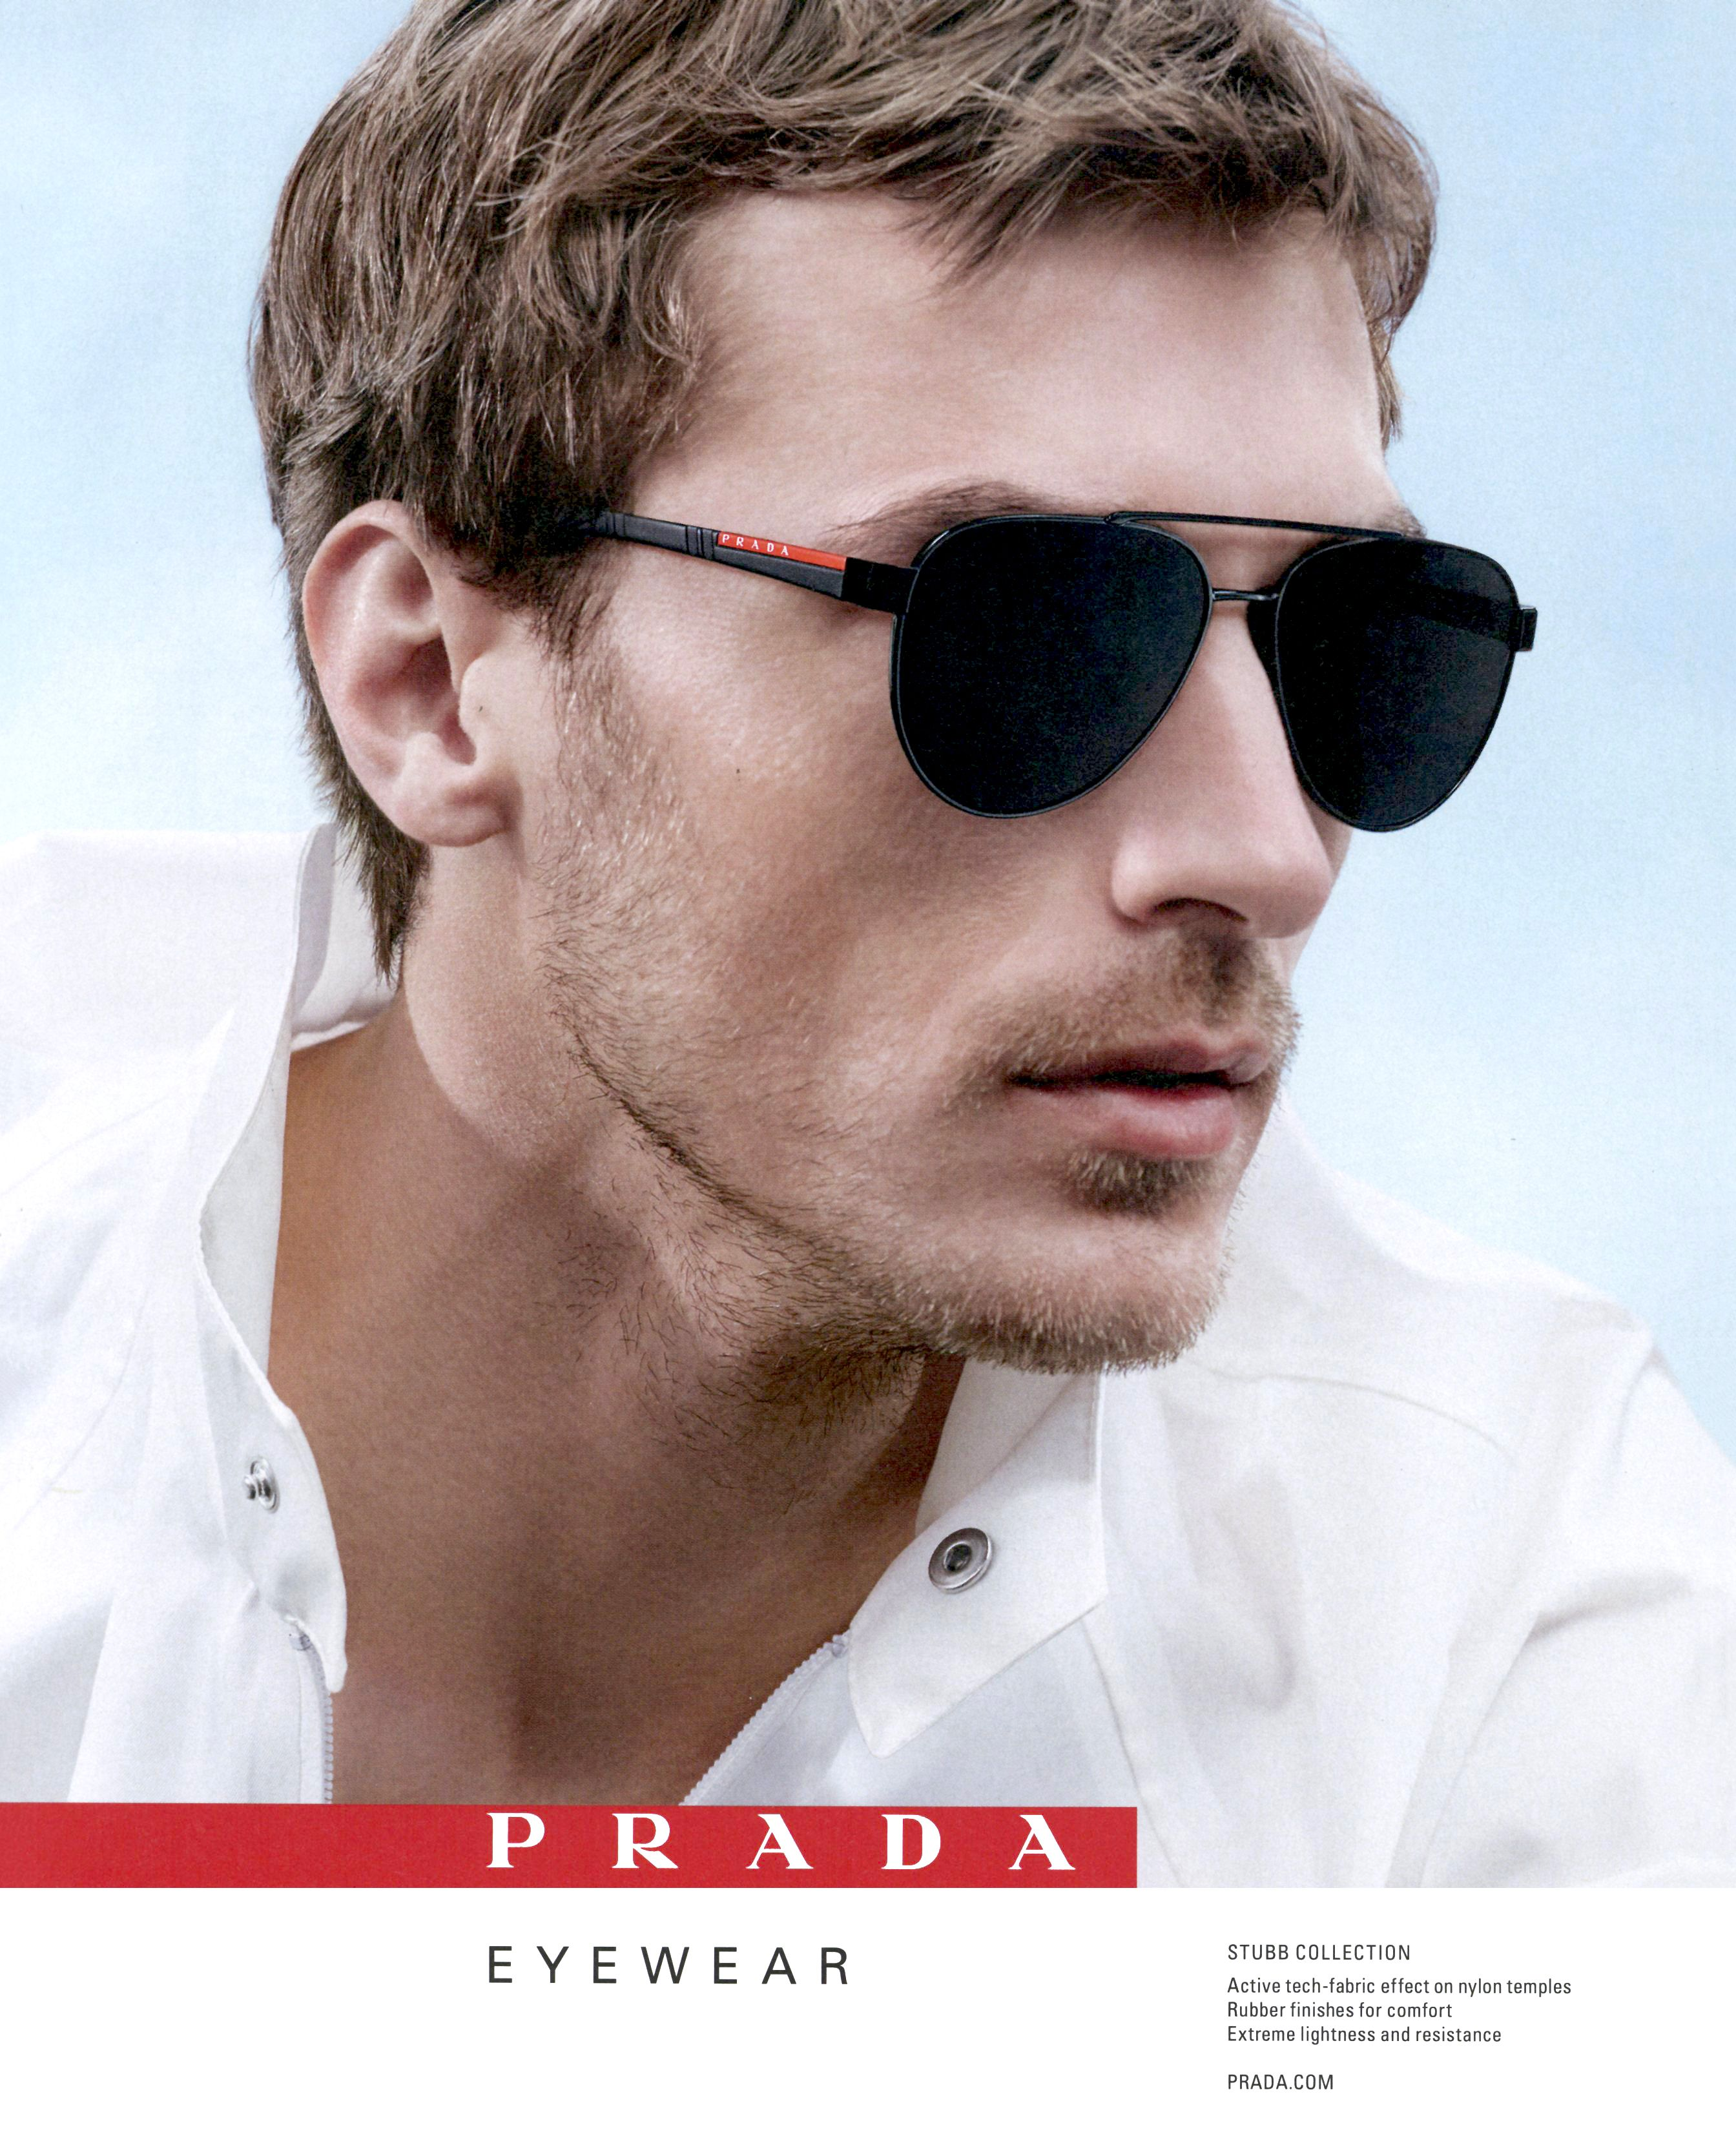 4b106059879 Clement Chabernaud photographed by Willy Vanderperre and styled by Olivier  Rizzo for Prada eyewear spring   summer 2018 campaign.